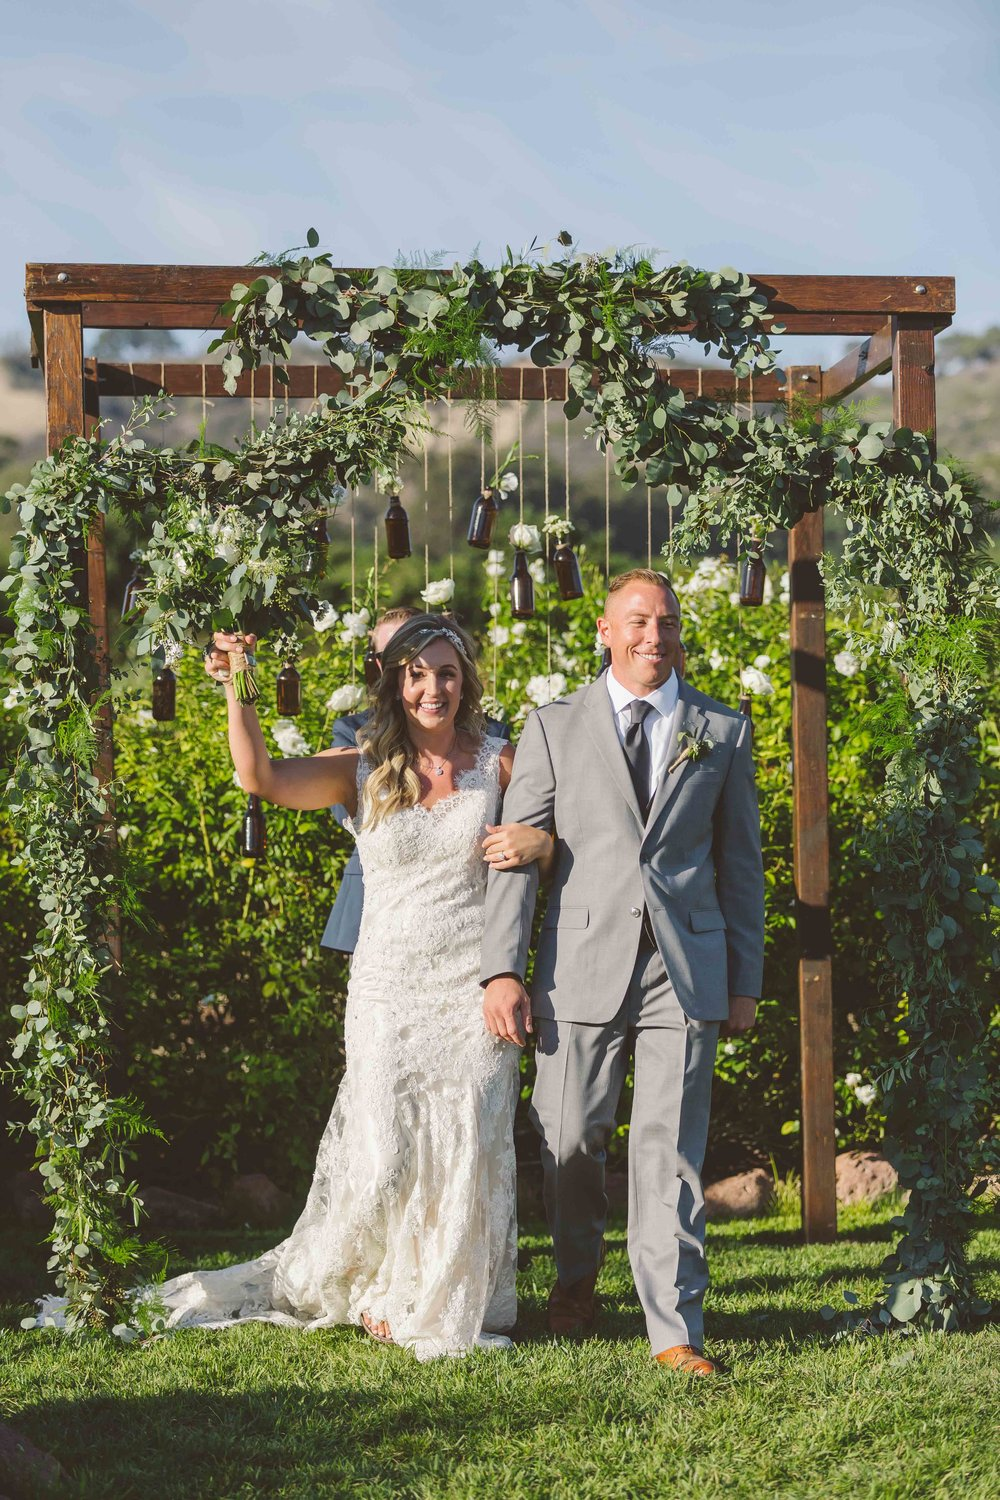 2015-Perkinson-Wedding-GerrysRanch-0155-web.jpg